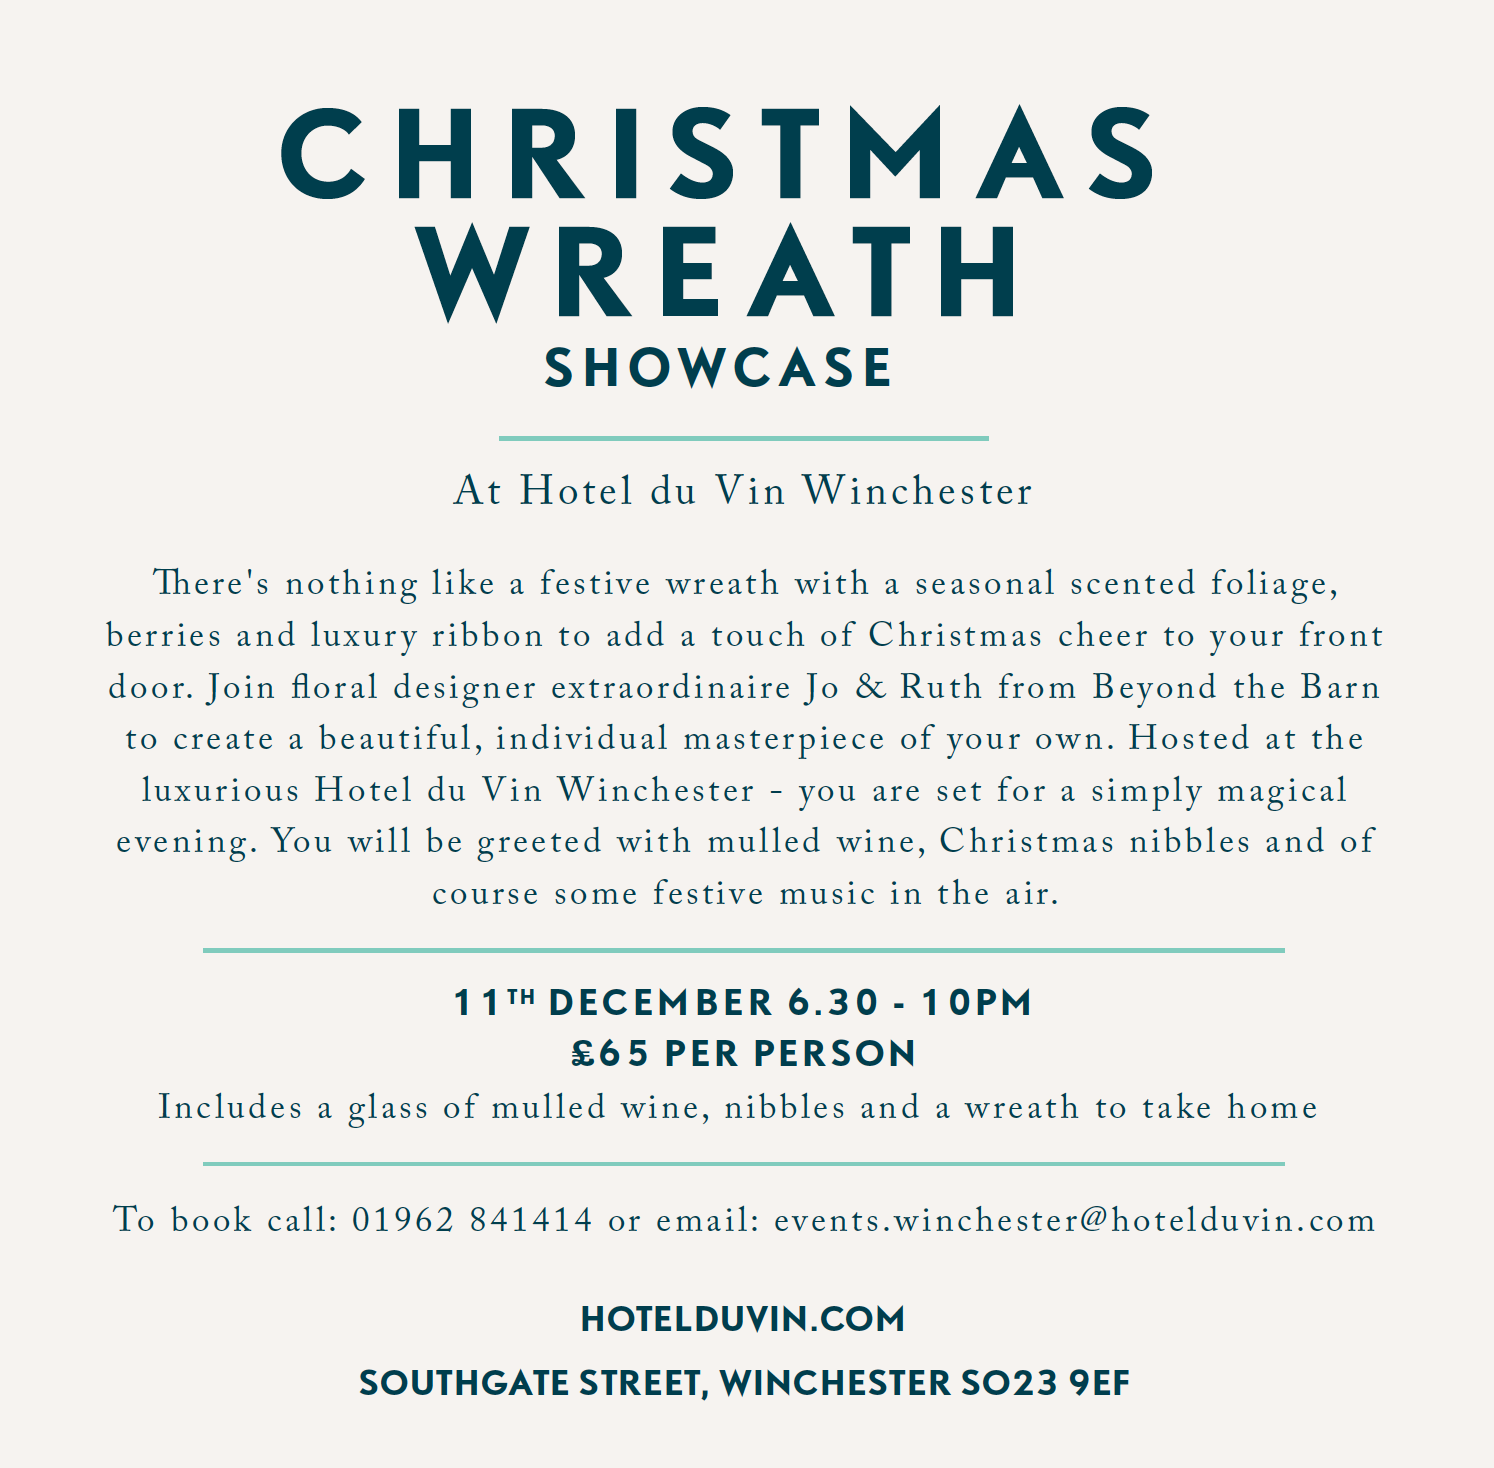 Hotel du Vin Winchester Christmas Wreath Showcase